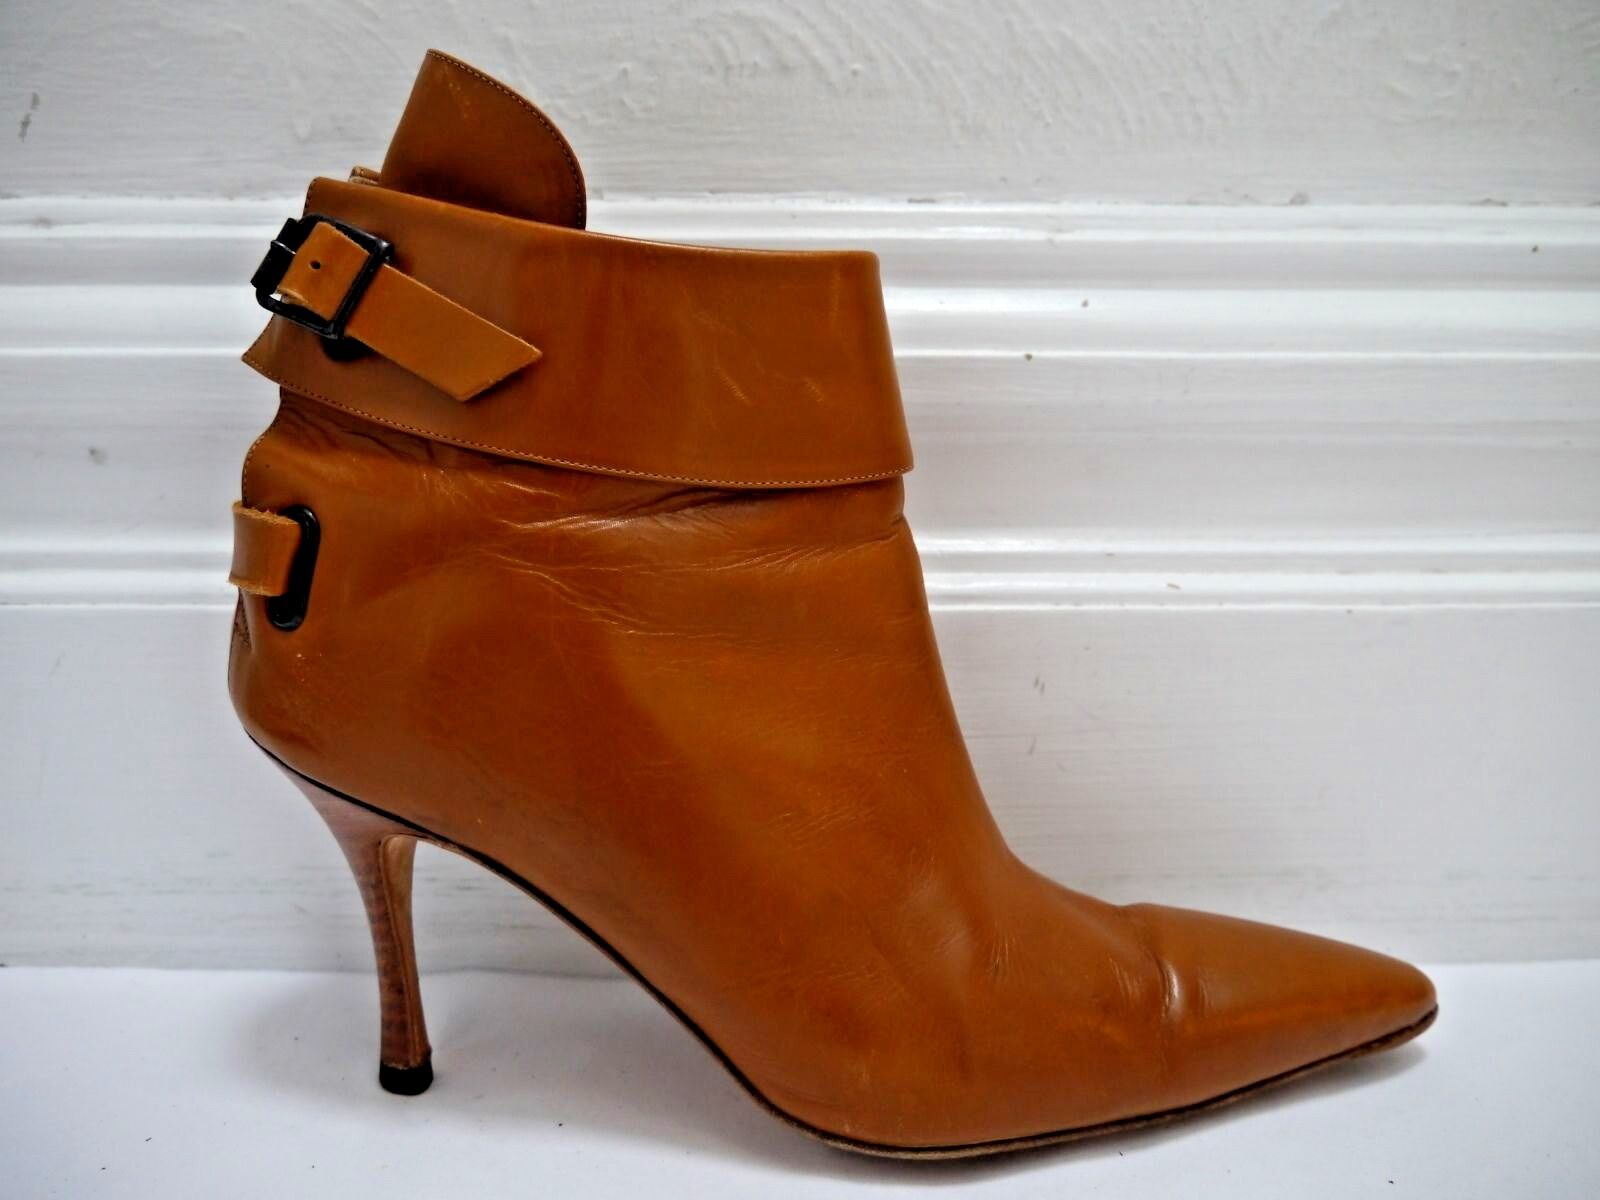 MANOLO BLAHNIK light brown leather back strap detail ankle boots booties size 38